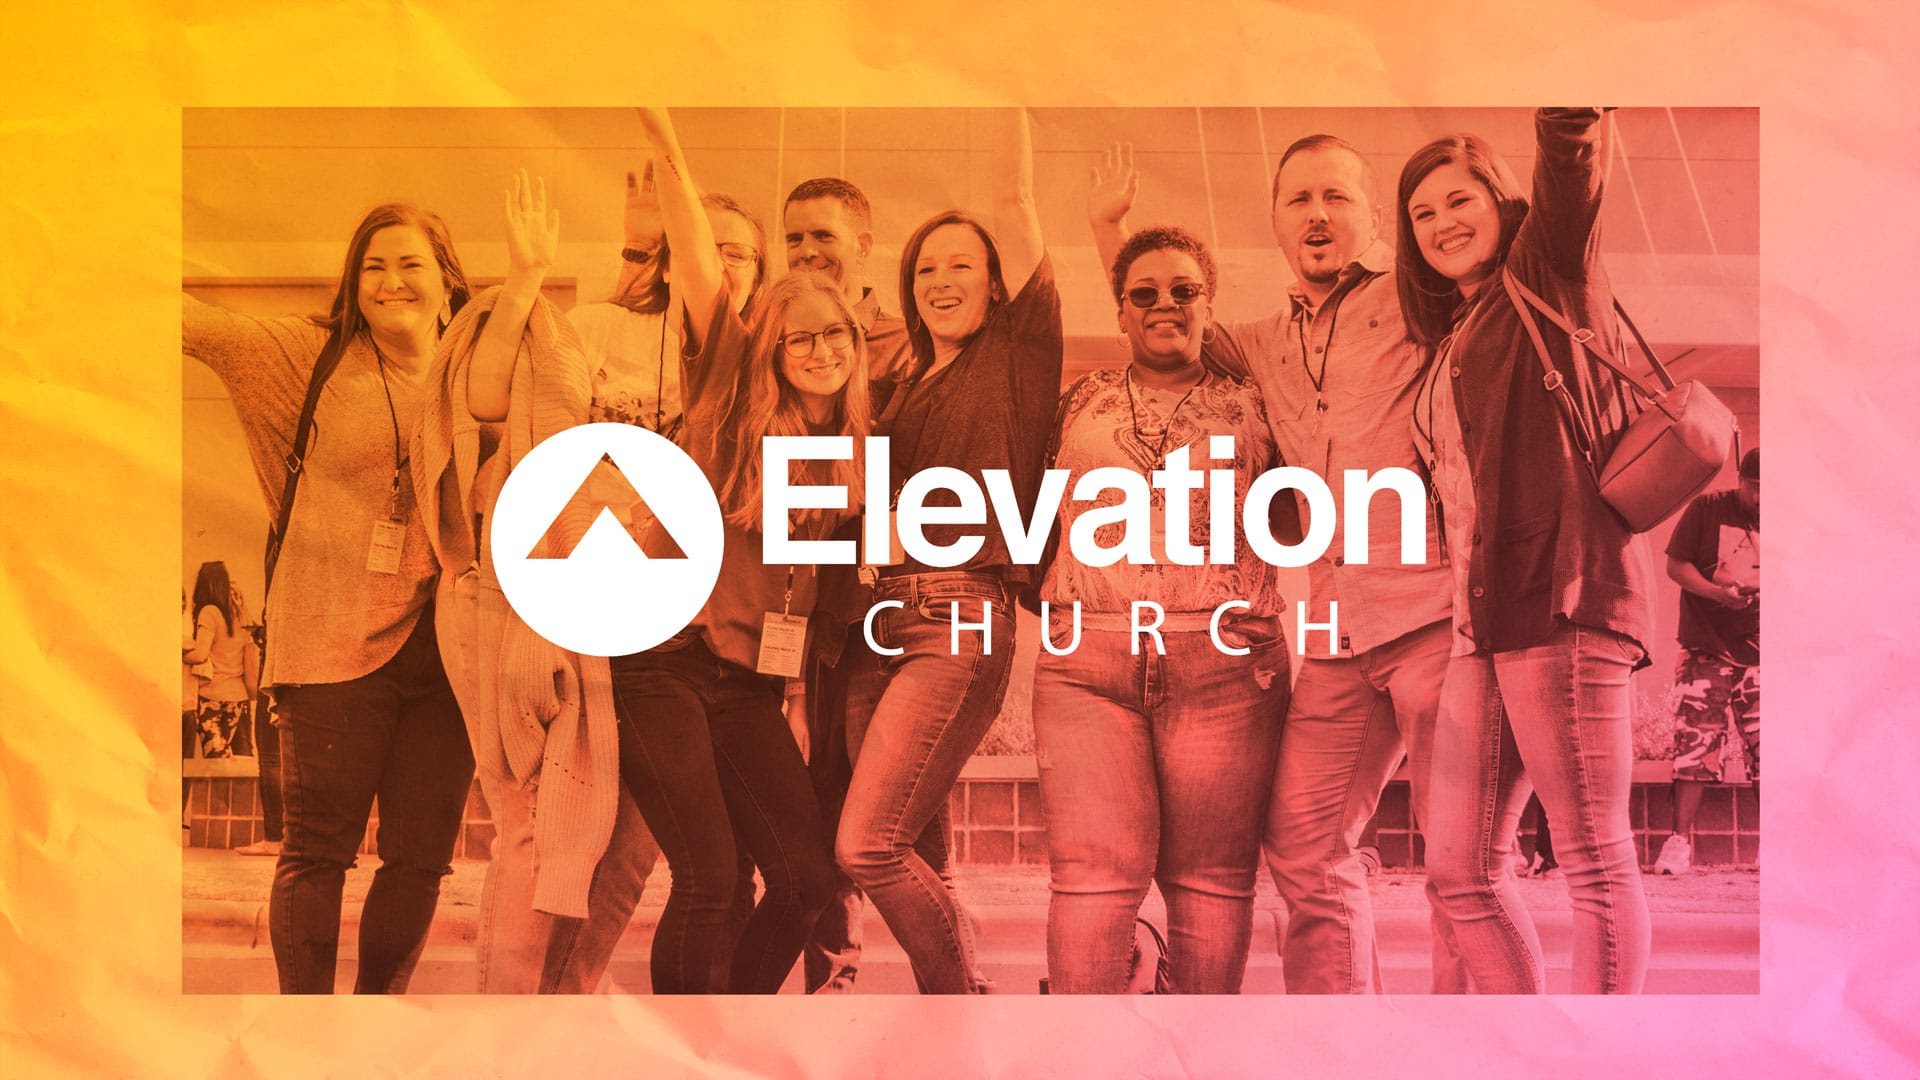 Elevation Church - See What God Can Do Through You